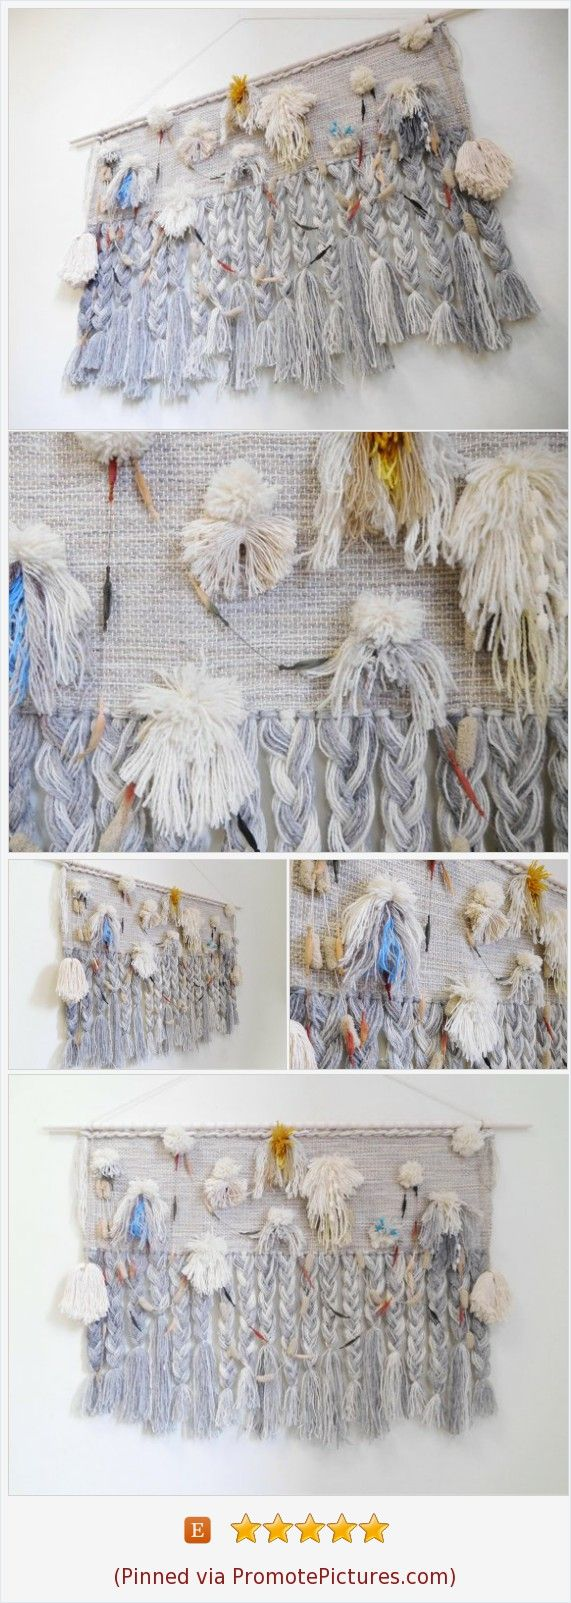 Recycled art large woven wall hanging wall weaving tapestry wall